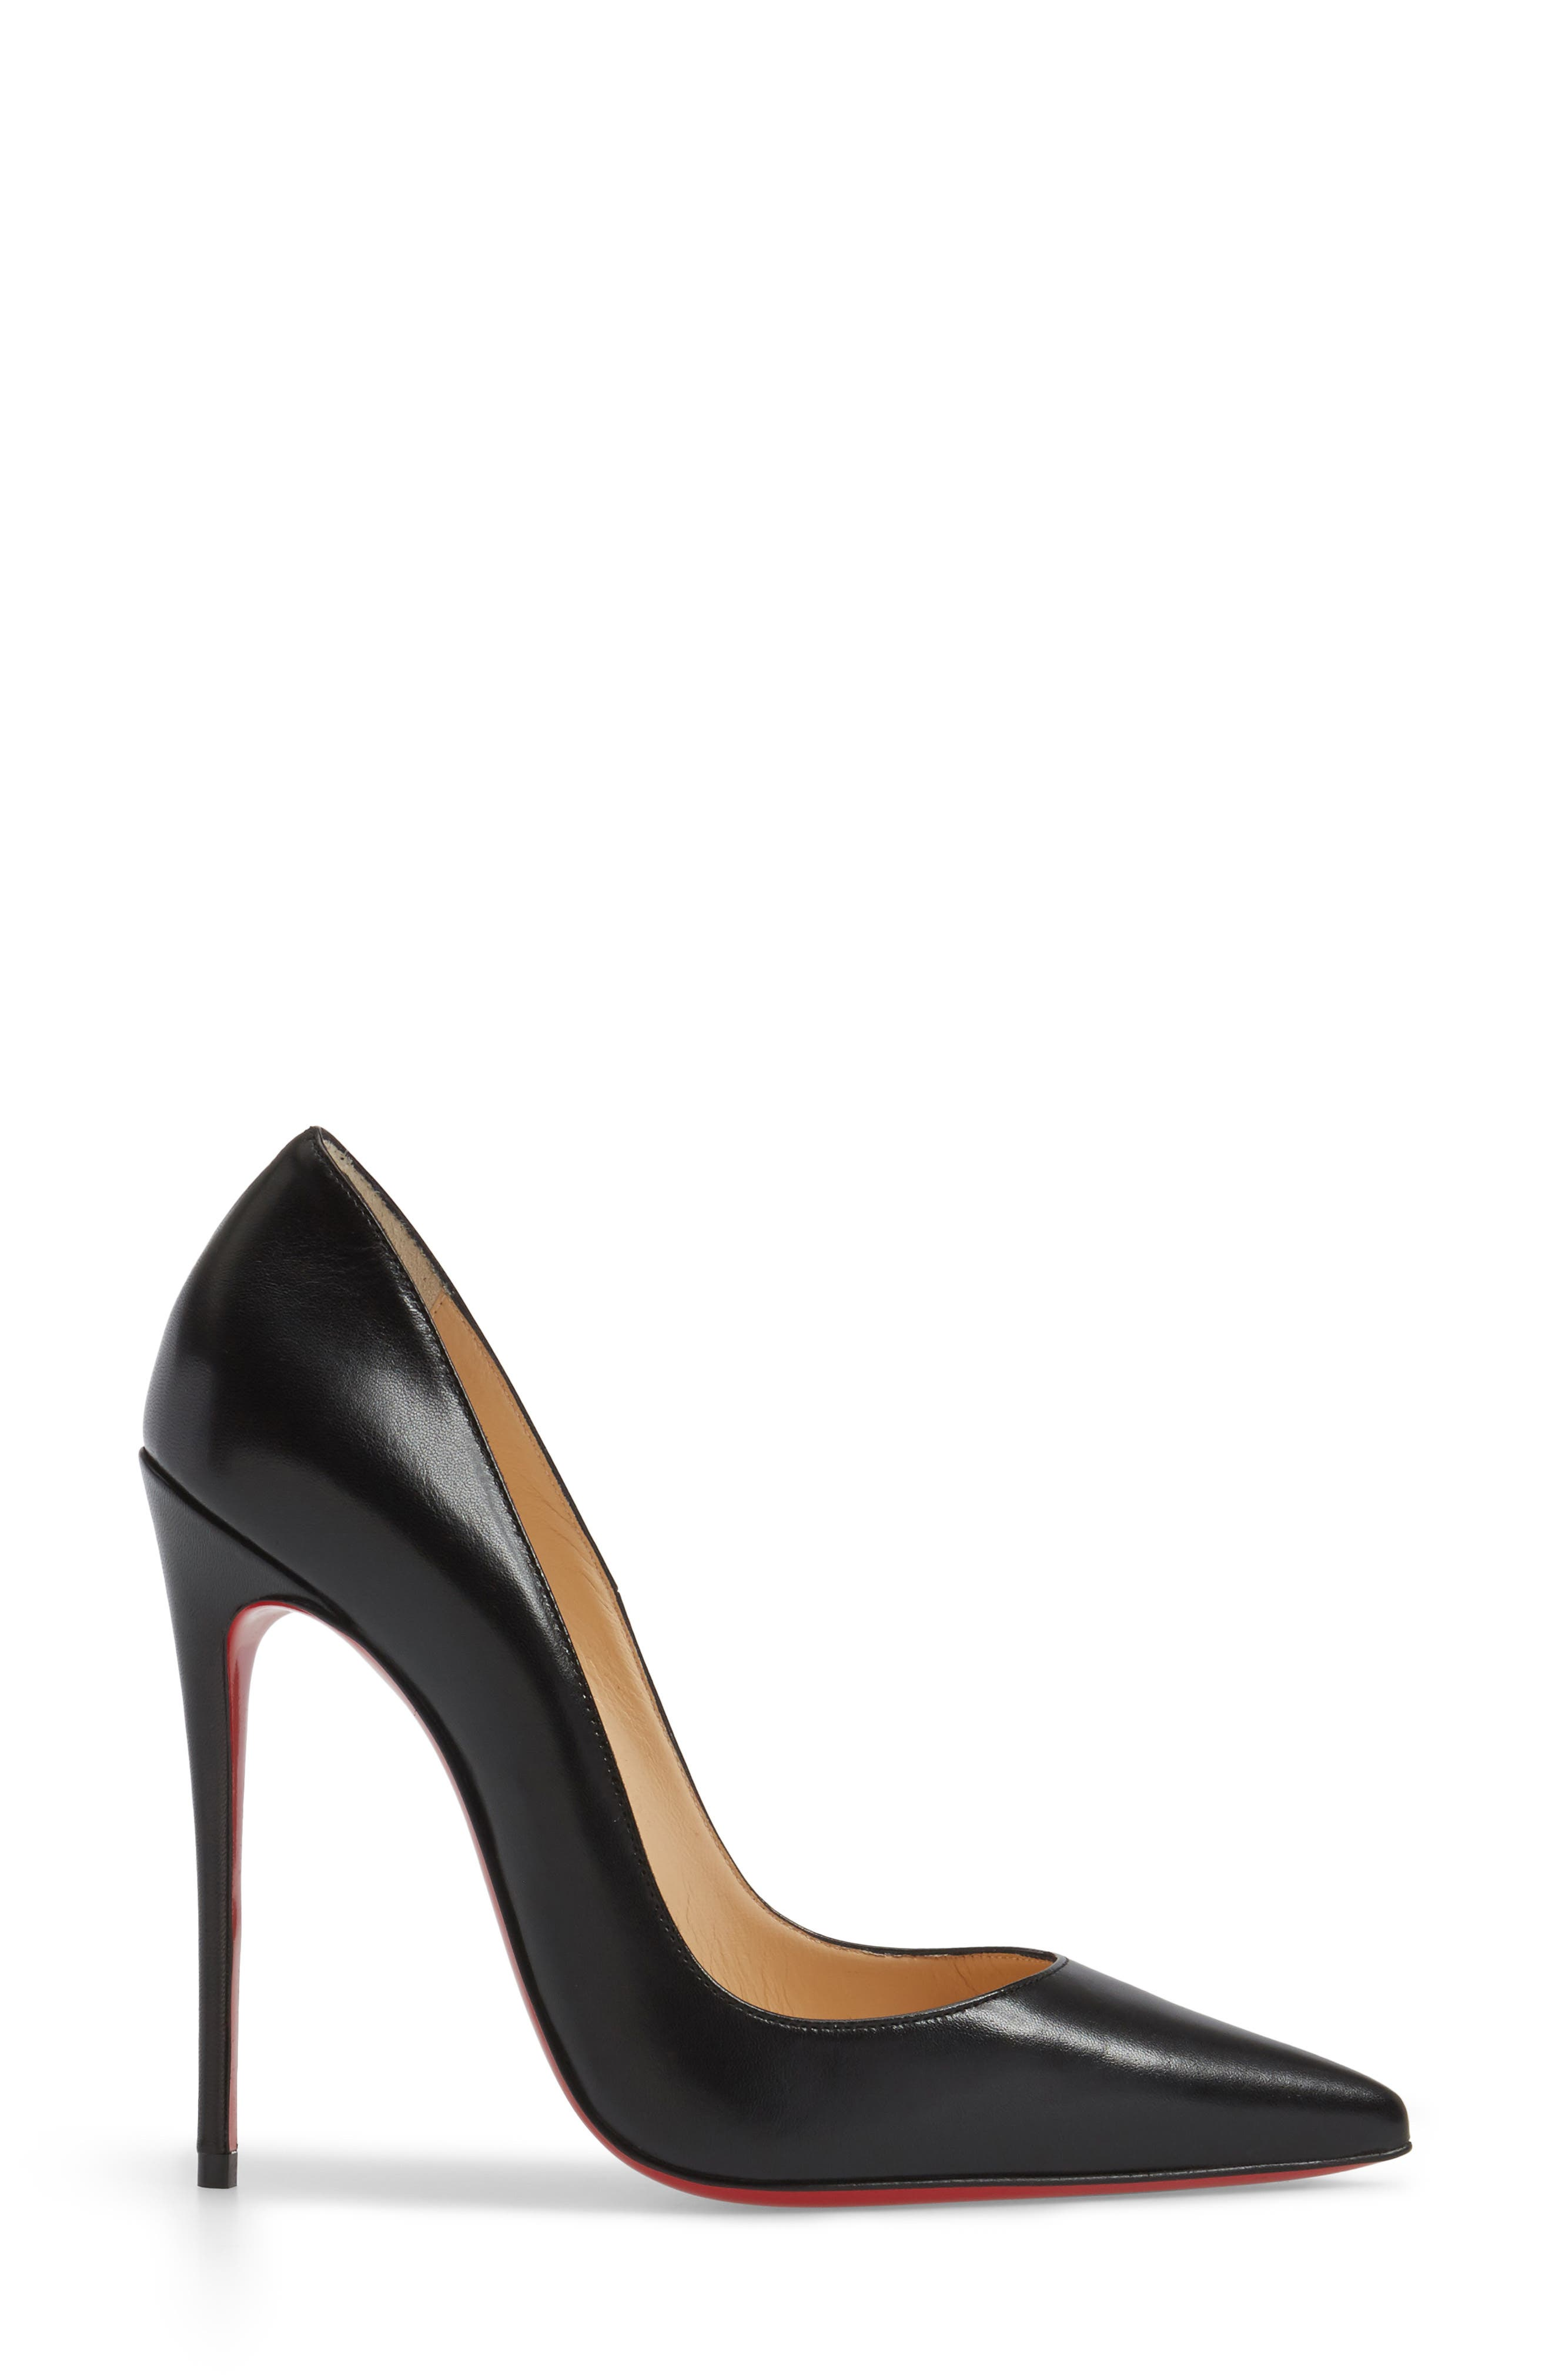 CHRISTIAN LOUBOUTIN,                             So Kate Pointy Toe Pump,                             Alternate thumbnail 3, color,                             001